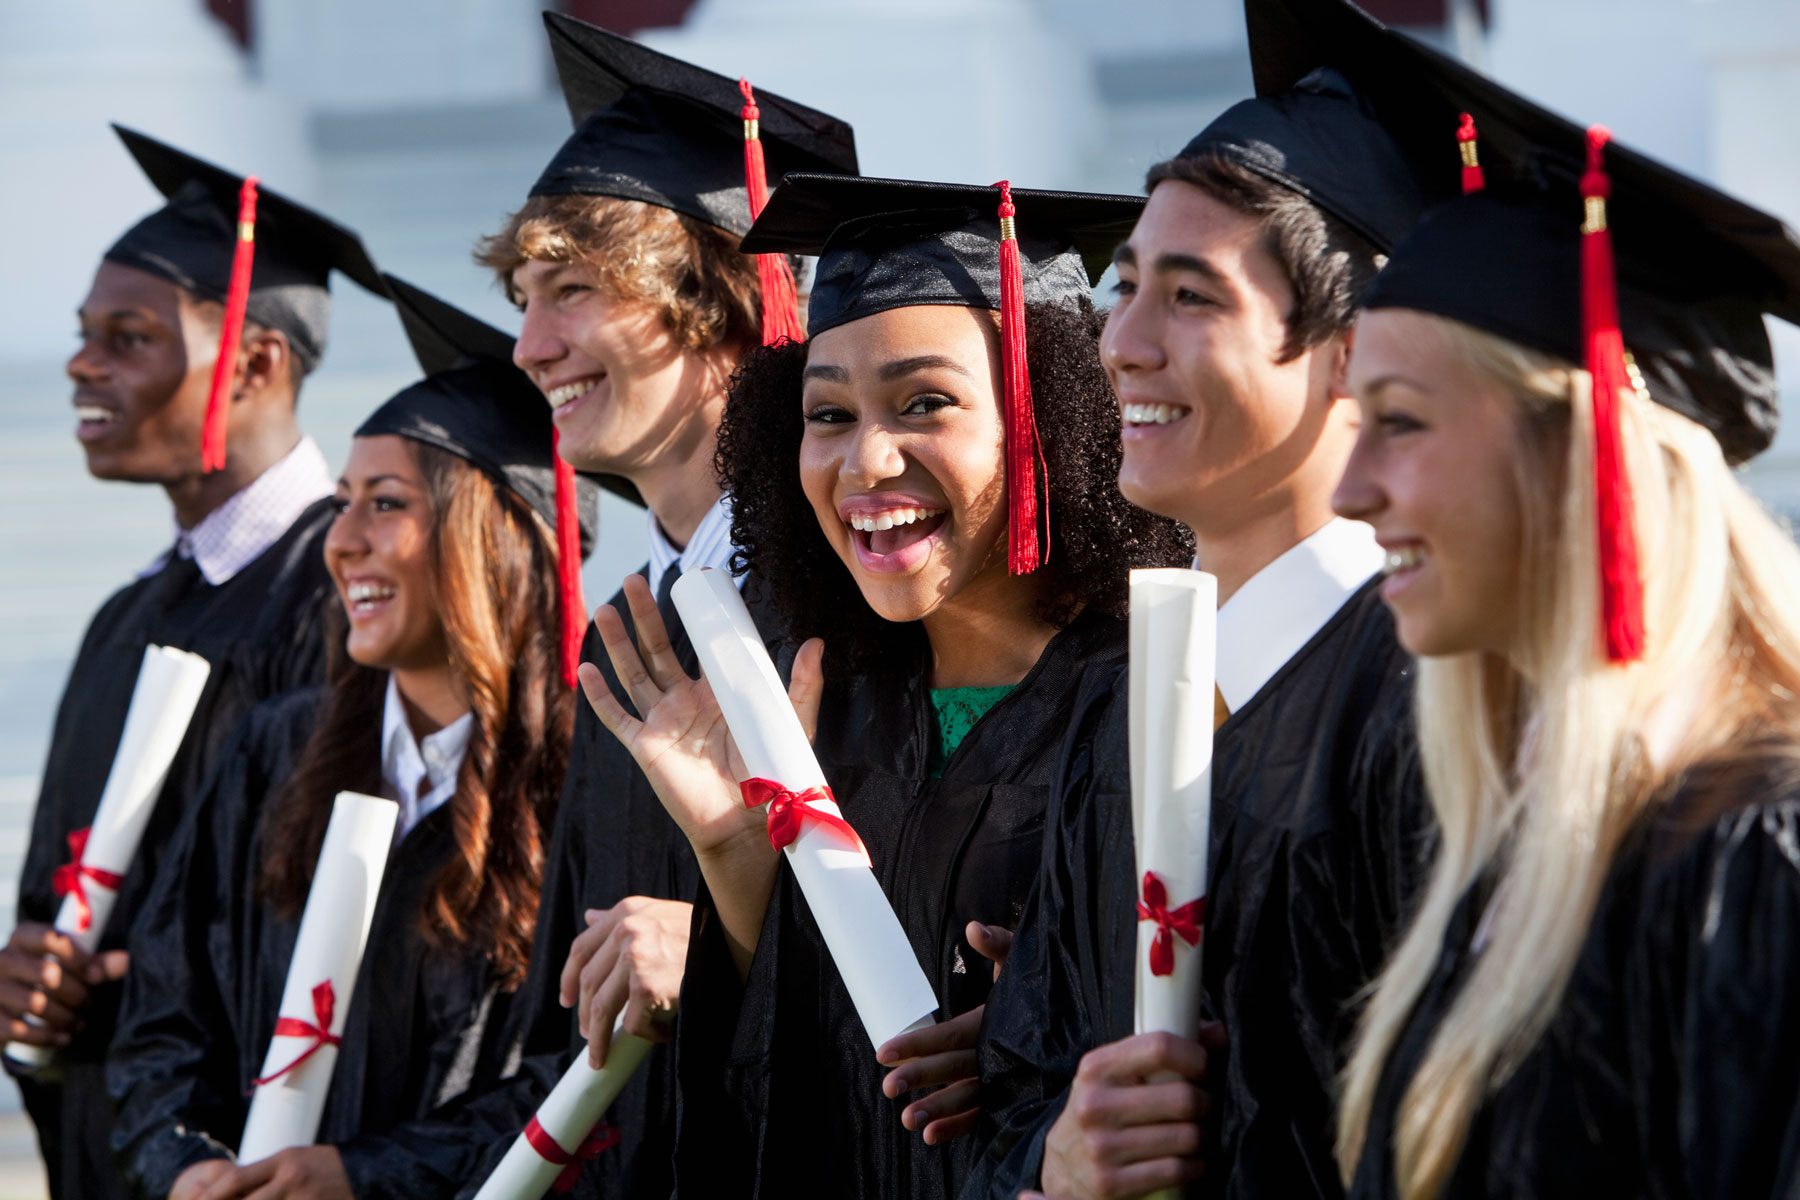 happy, diverse college students at graduation ceremony